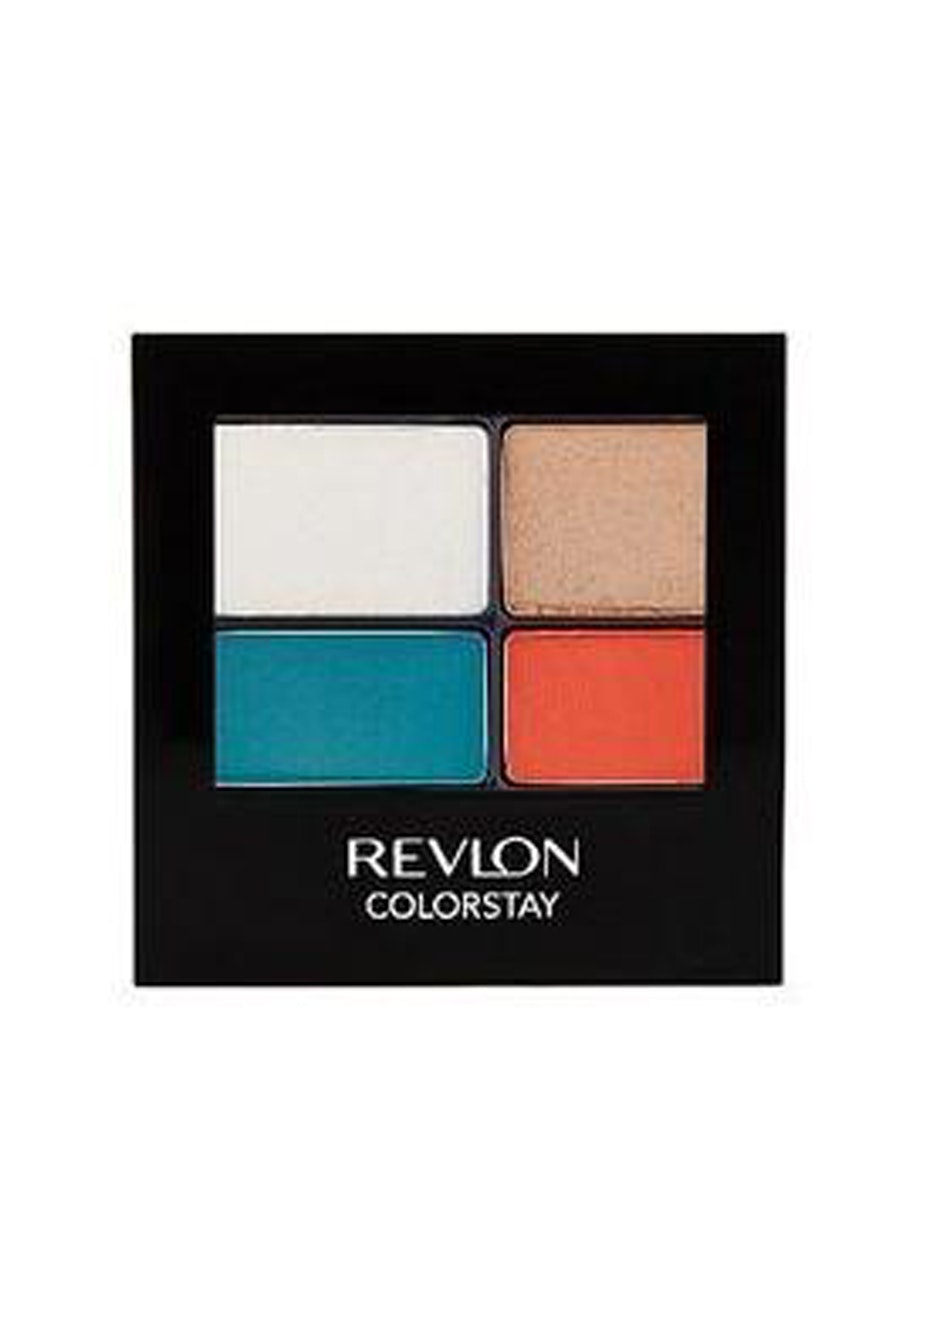 Revlon Colorstay 16hr Eyeshadow Quad Wild